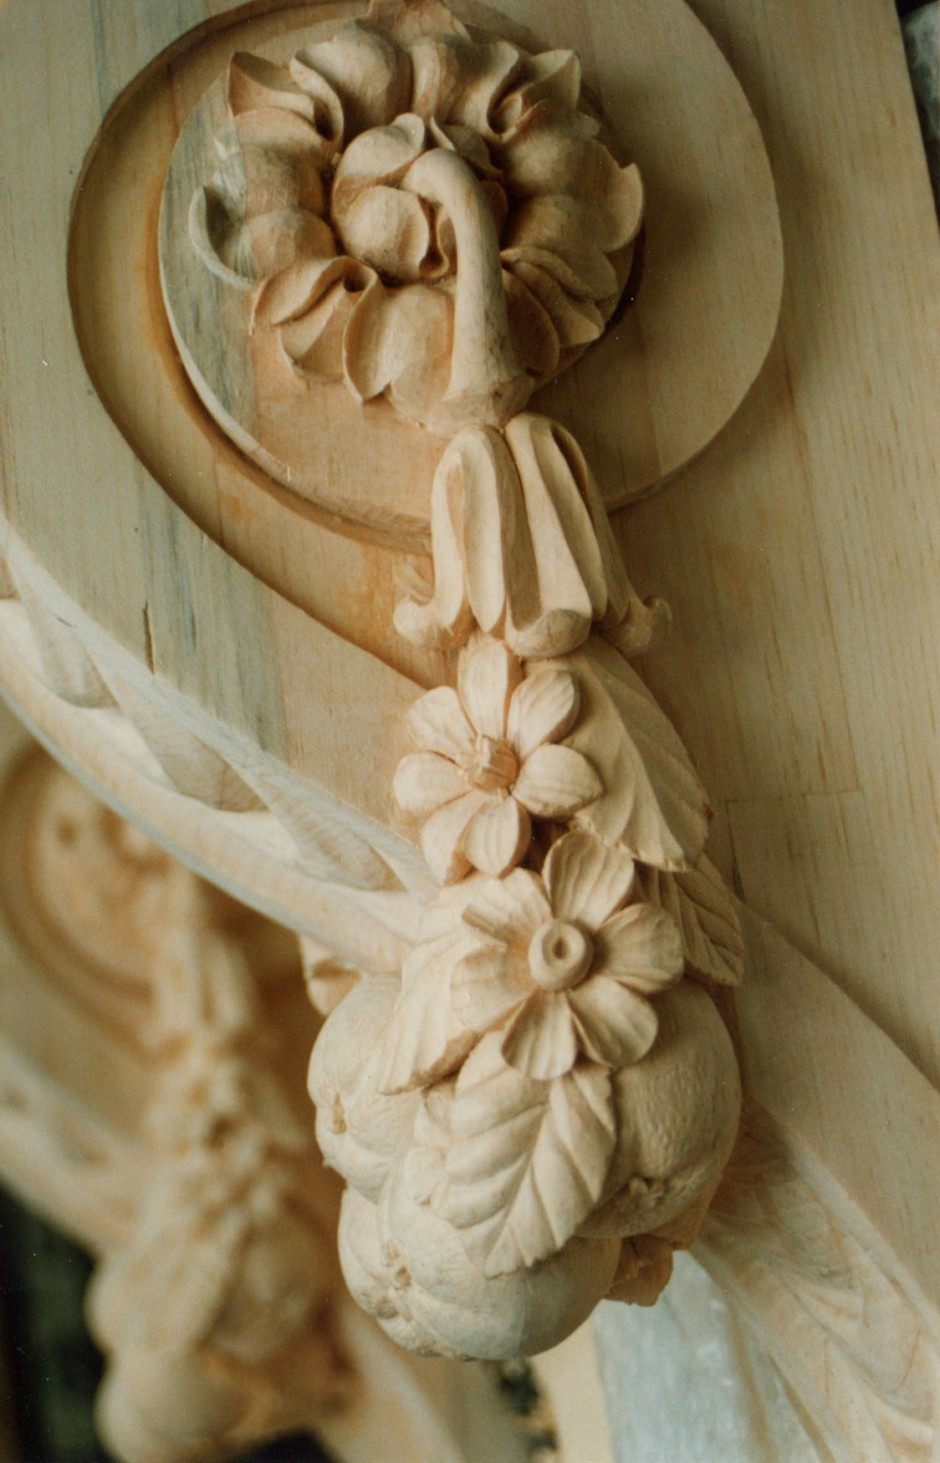 Bespoke Carving Bespoke Legs For A Console Table In